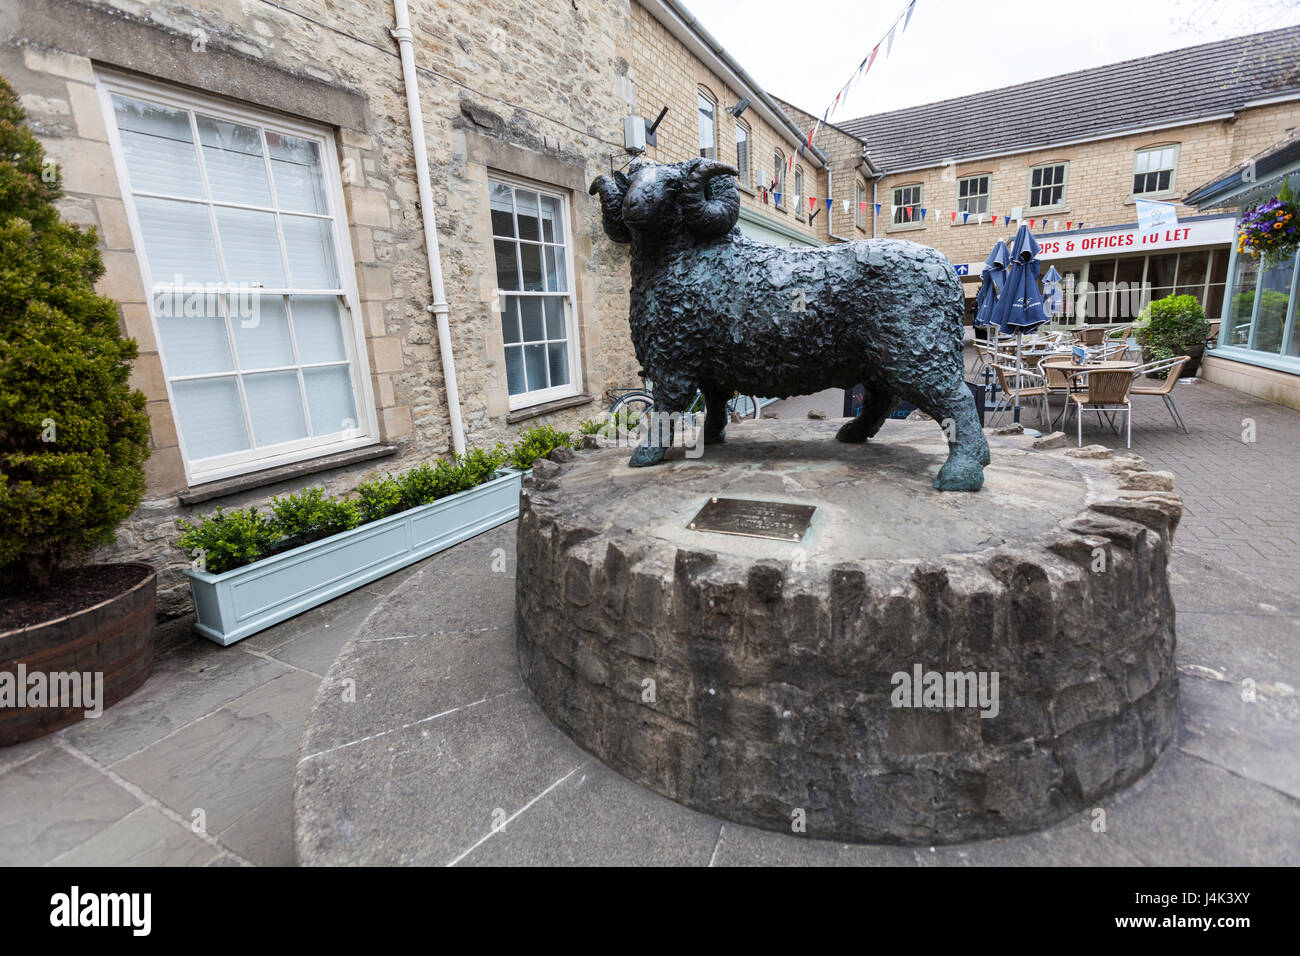 The Wool market sheep statue, Cirencester, Gloucestershire, England - Stock Image